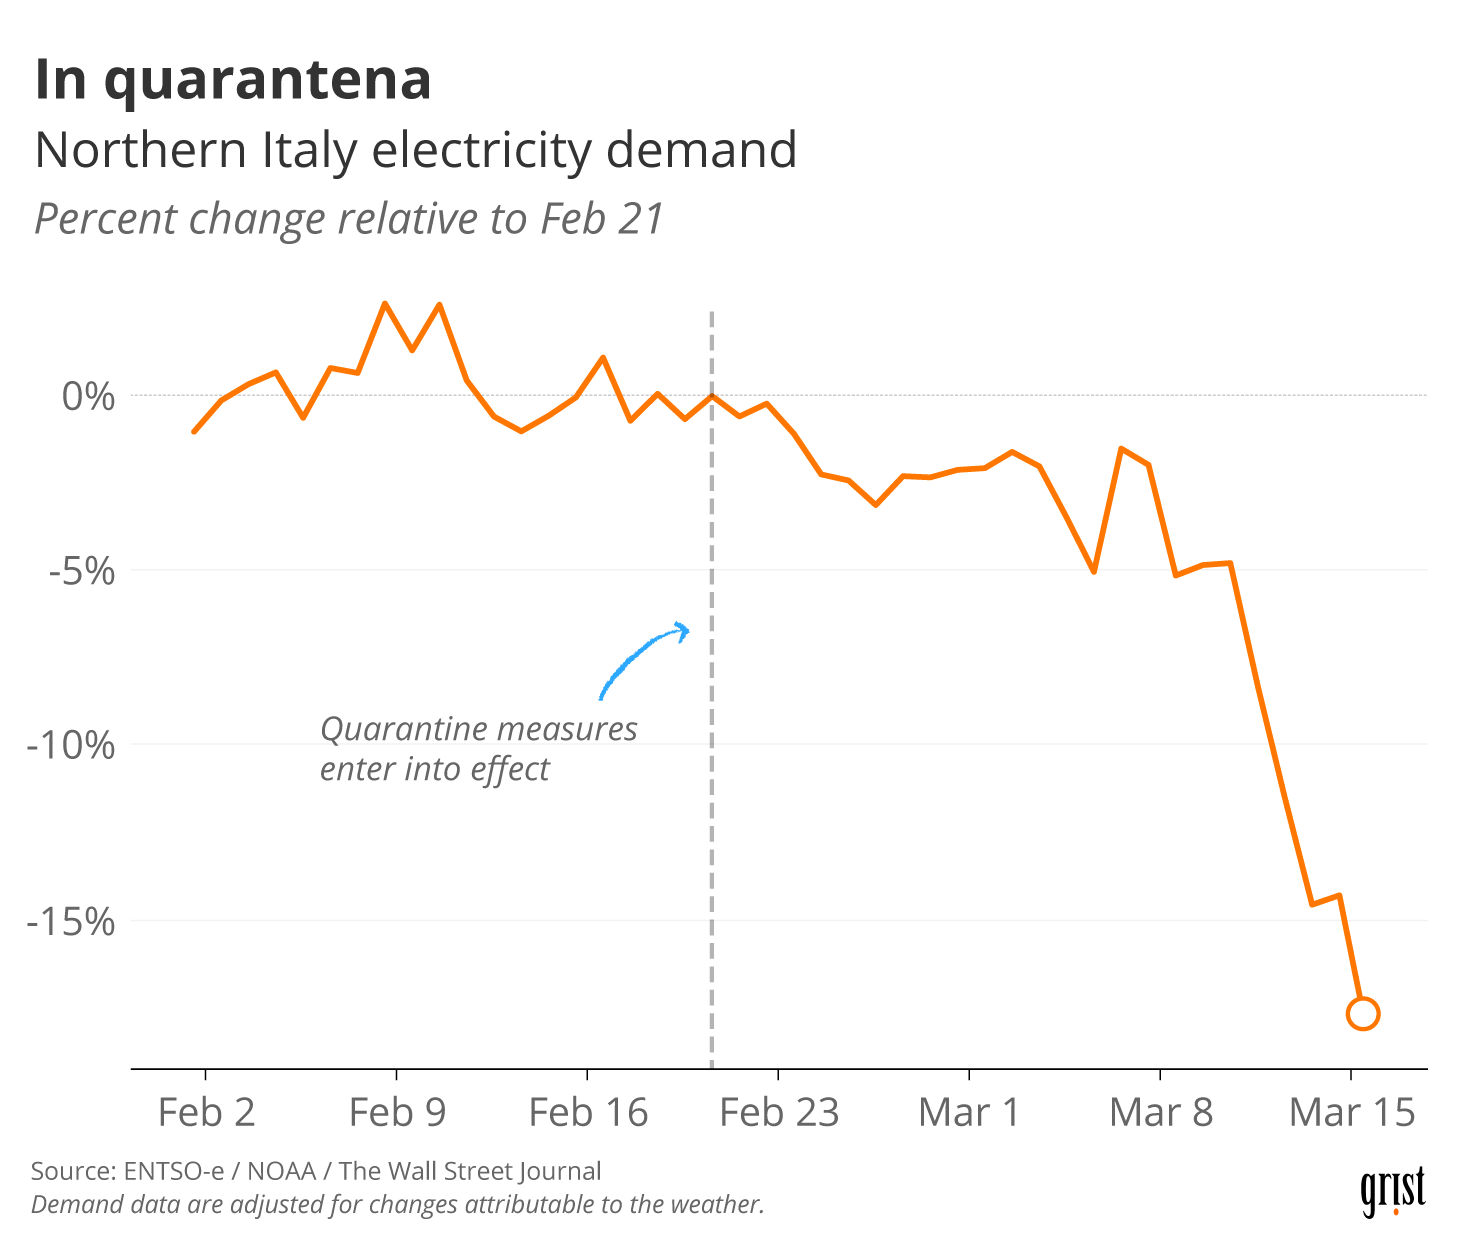 A line chart showing the percent change in Northern Italy electricity demand relative to Feb 21, 2020 (when quarantine measures entered into effect). By mid-March, demand had fallen 18%.